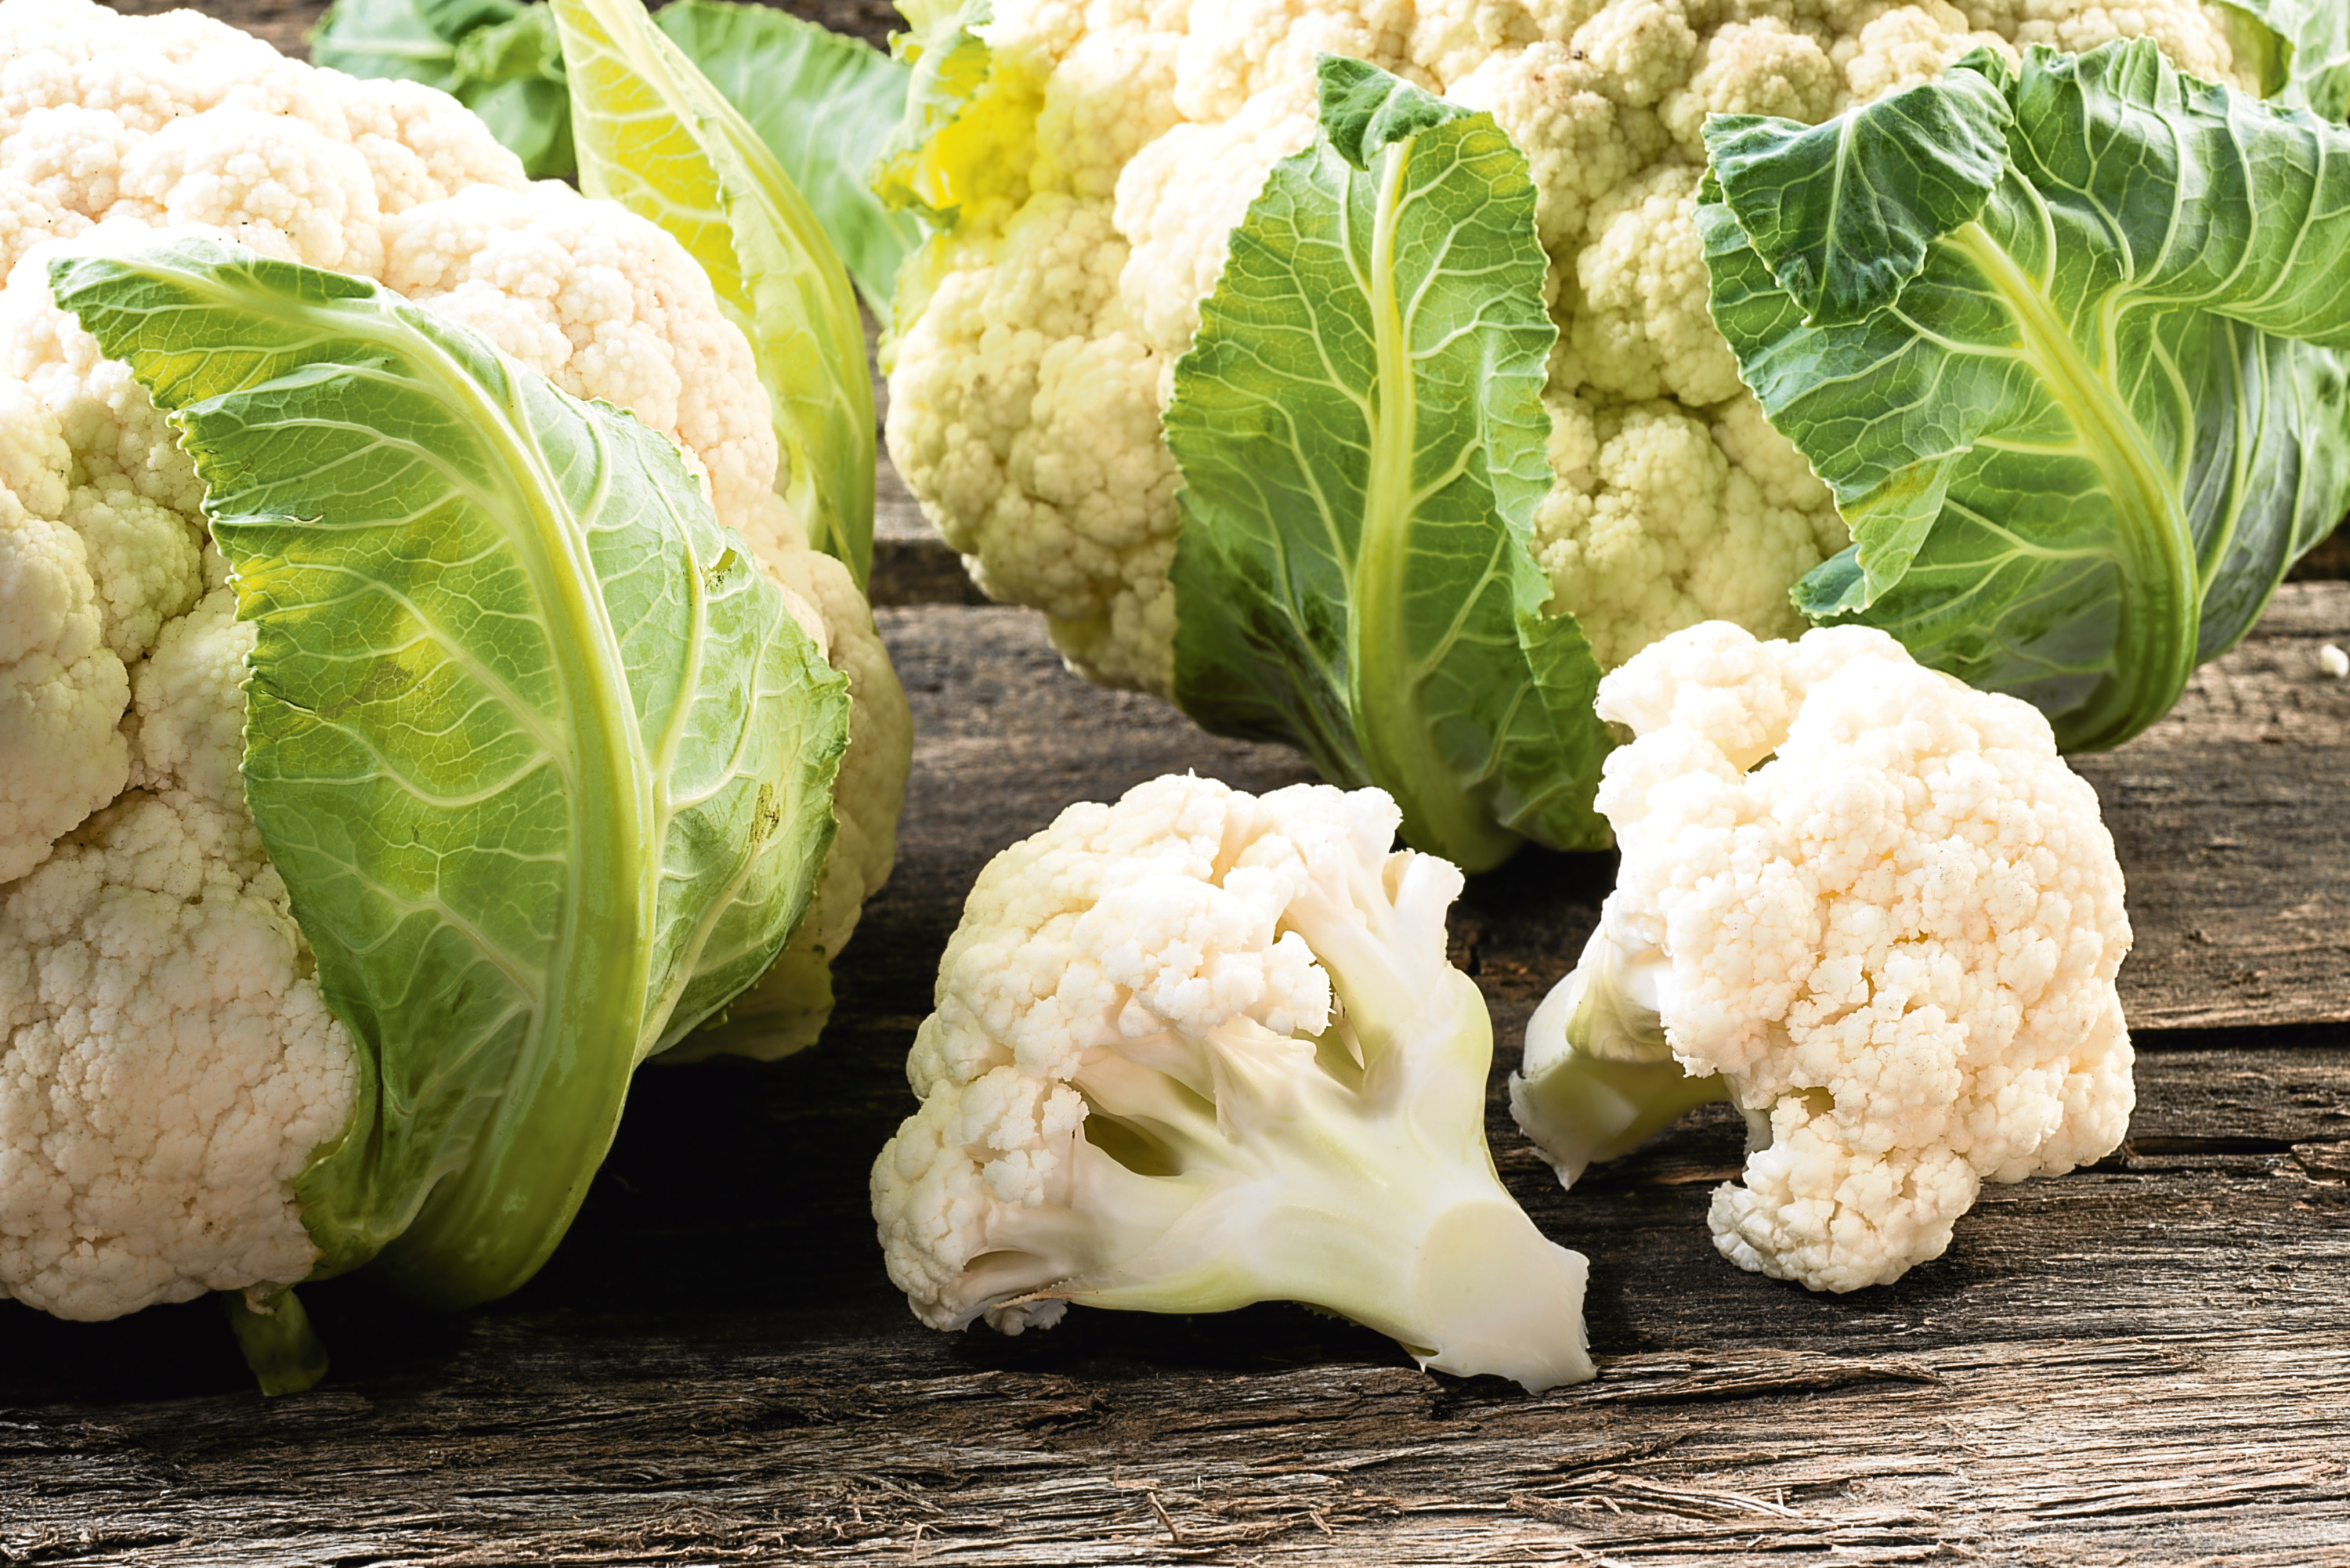 The company grows a range of vegetables including cauliflower.